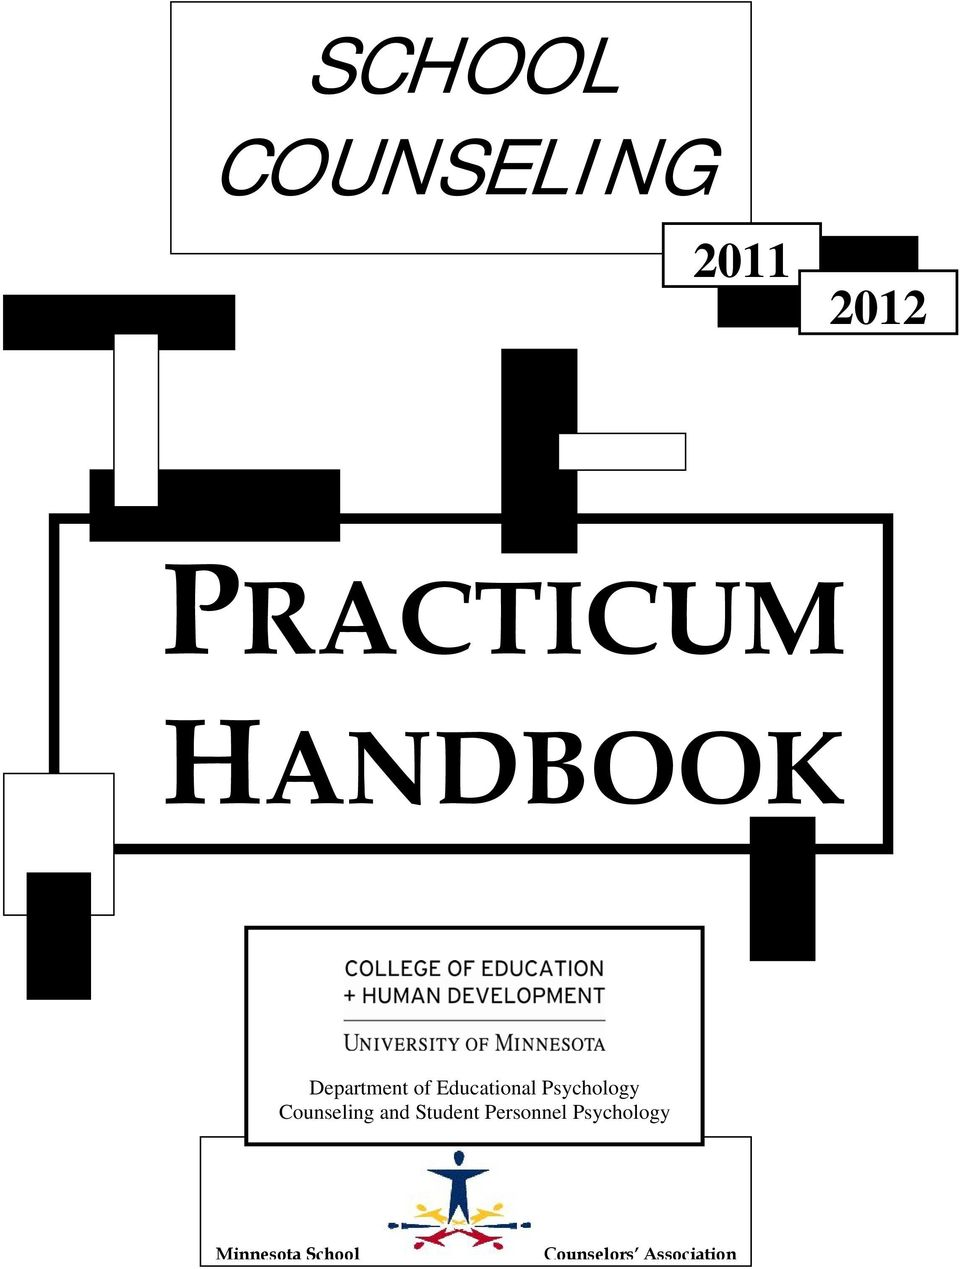 Psychology Counseling and Student